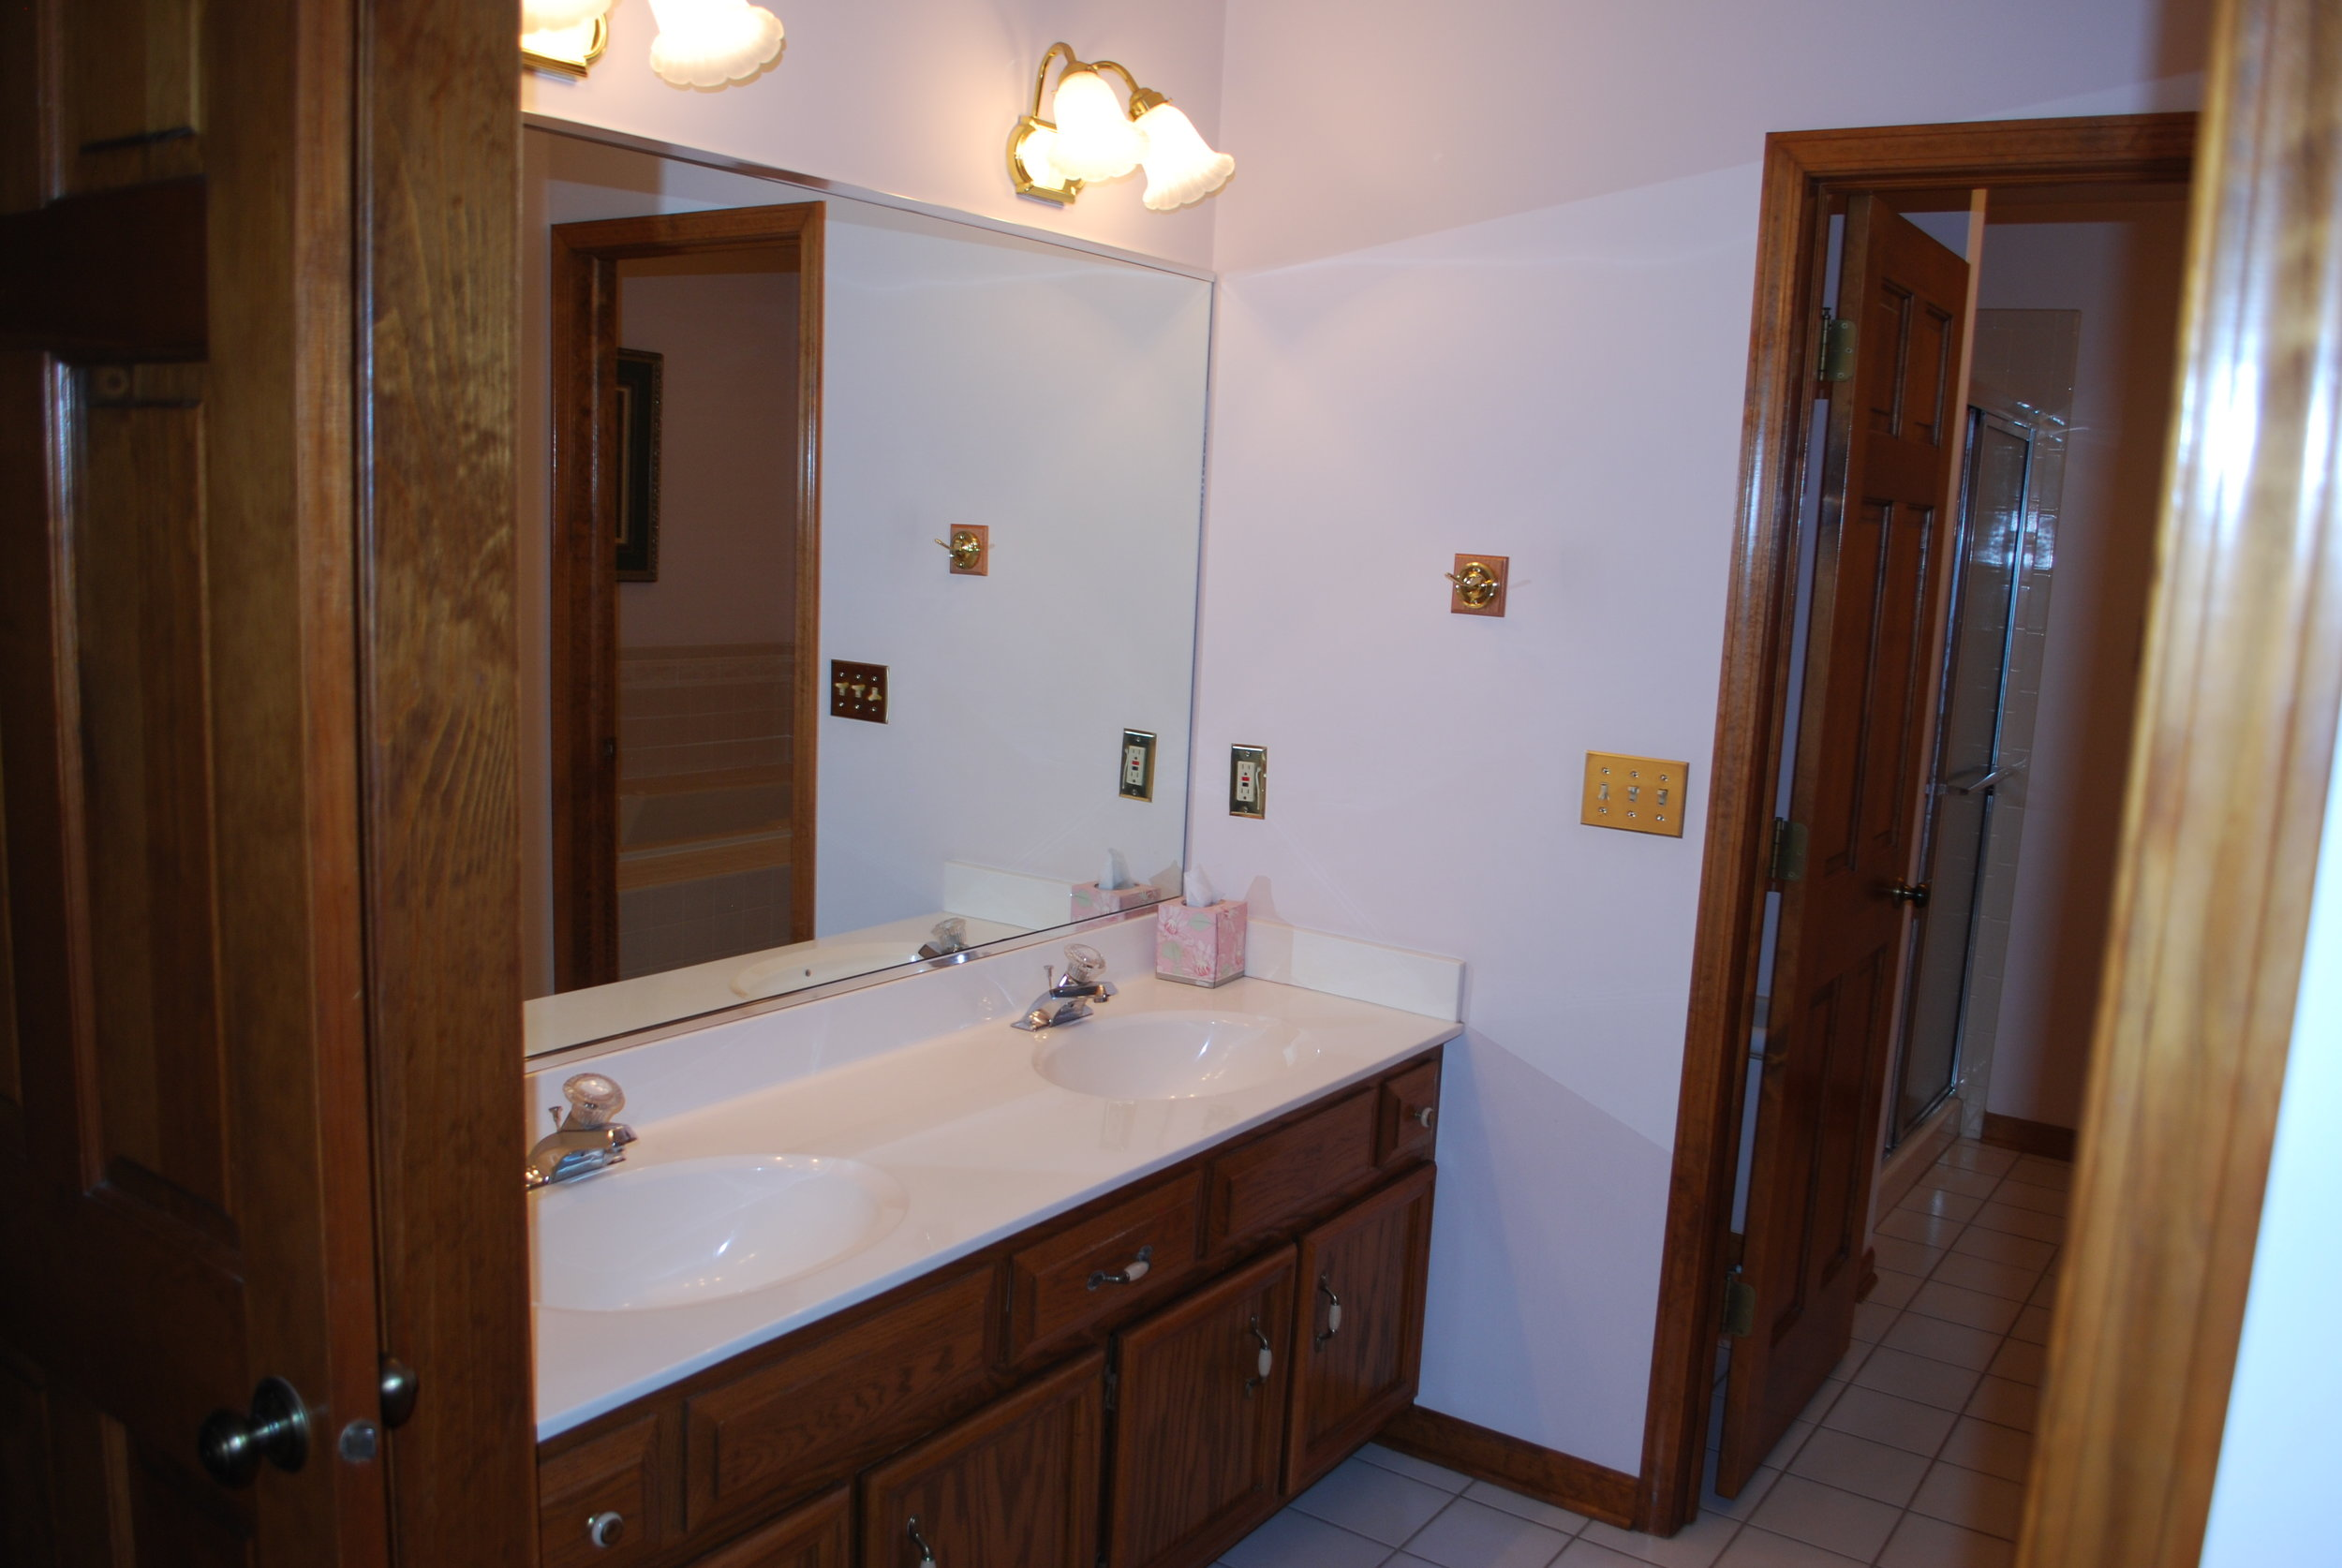 BEFORE photo of a Naperville Bathroom Vanity Remodel with New Vanity, Granite Counters, Custom Medicine Storage Cabinet and Two Mirrored Medicine Cabinets for Extra Storage in this End Unit Townhome.